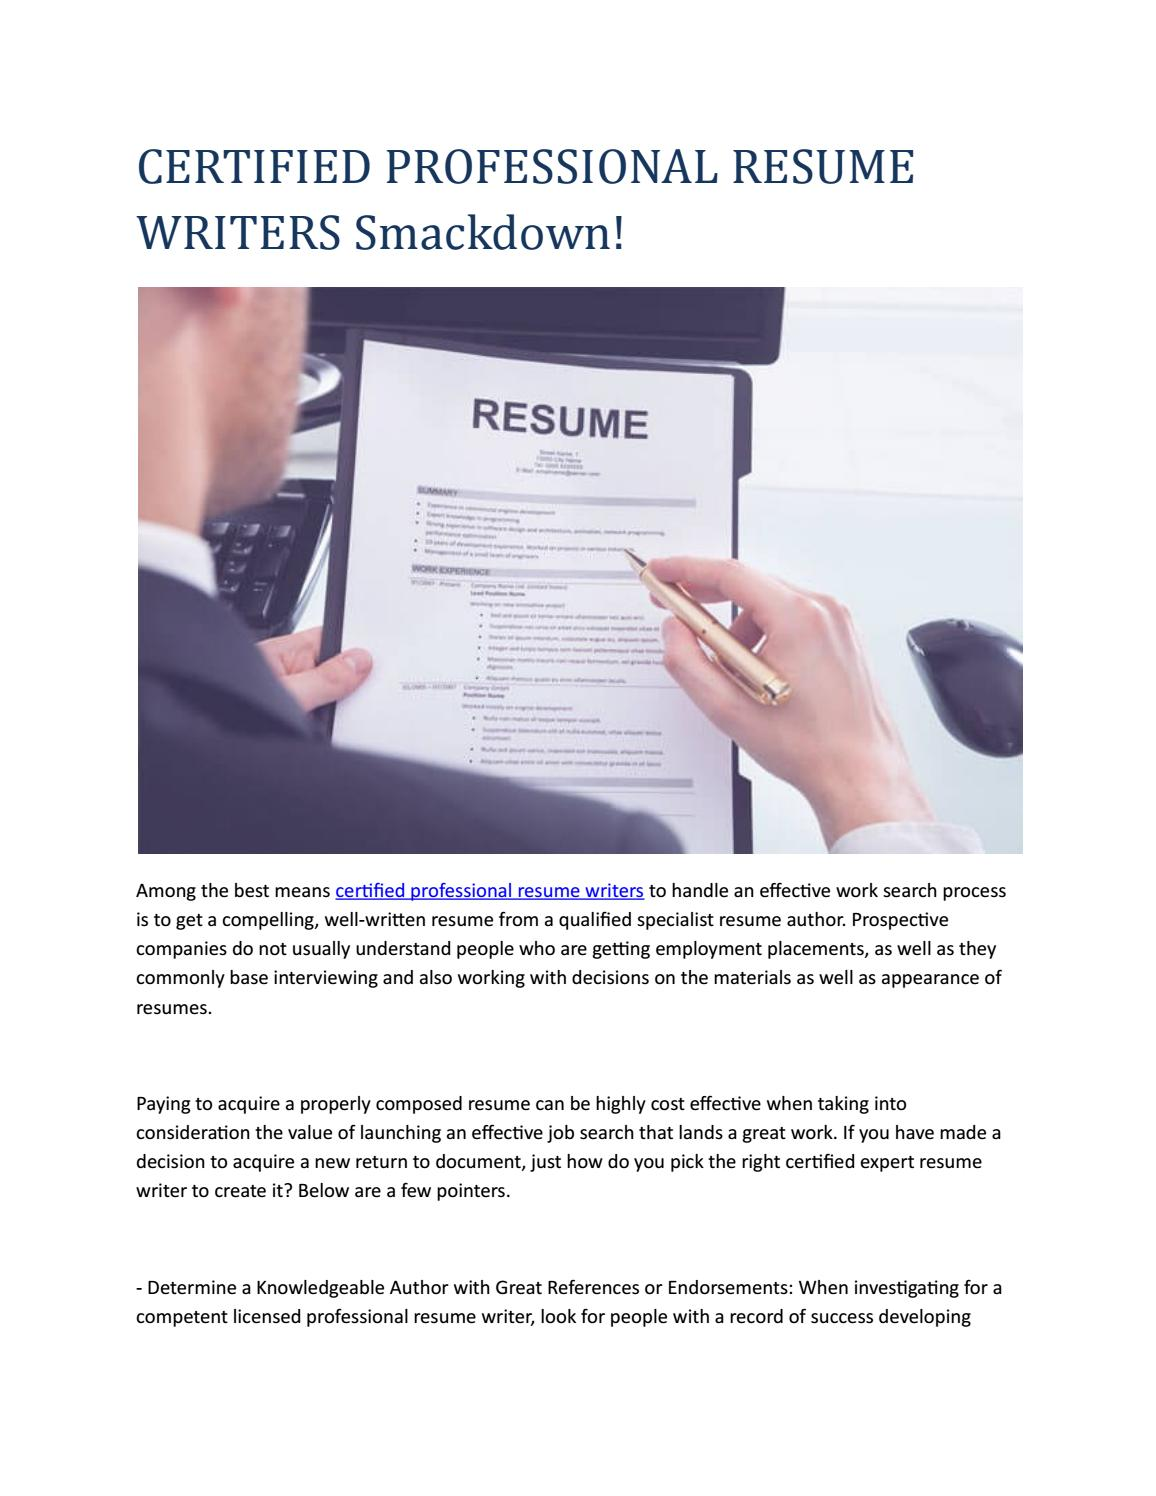 Certified Professional Resume Writers By Amyjustice00 Issuu